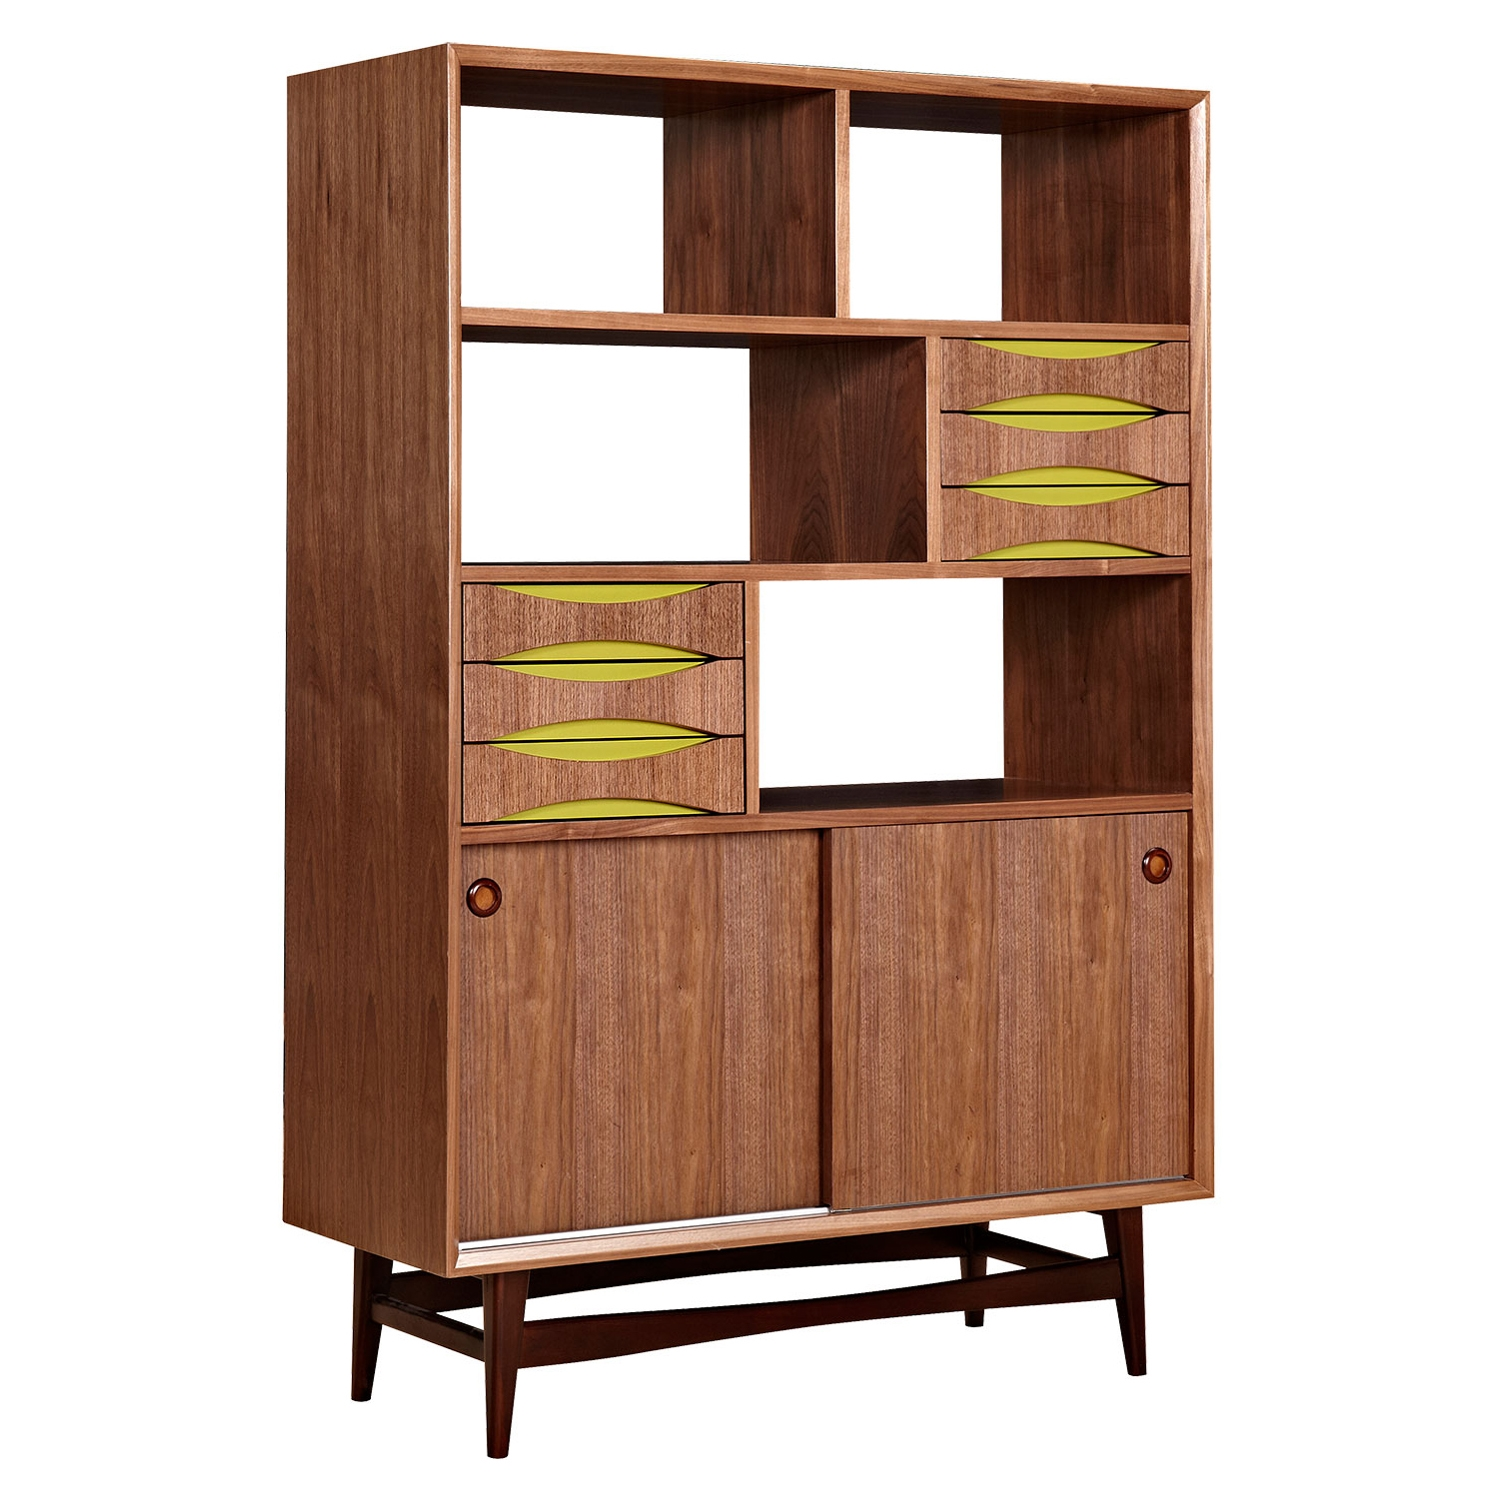 Hanna Storage Unit - Walnut and Green